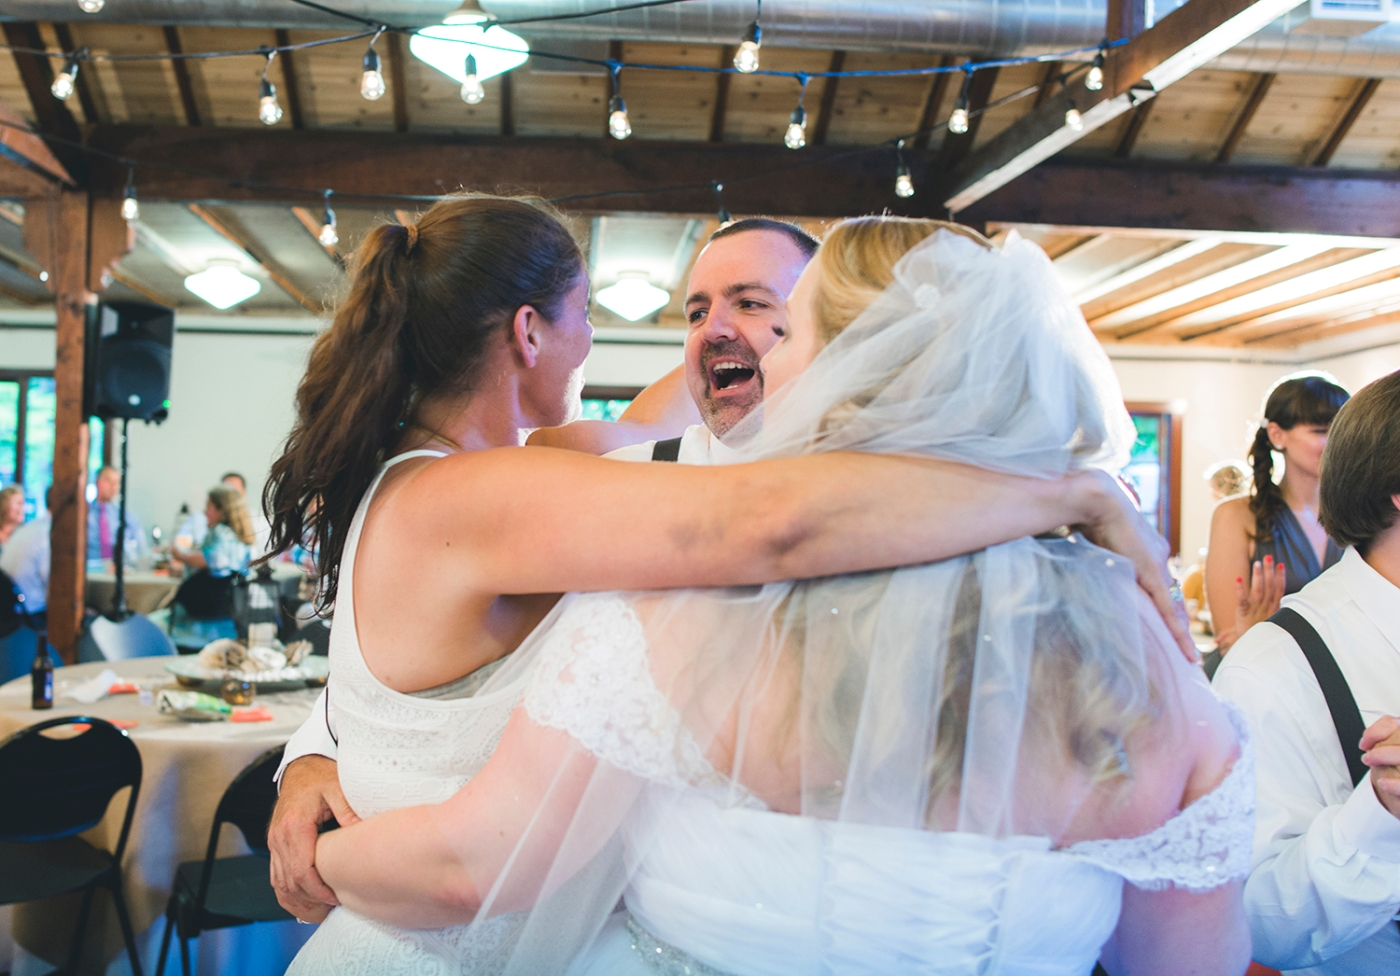 Jane_S_Seattle_photography_Kadie_and_Steve_2016_Des_Moines_Marina_Wedding_DSC_2156